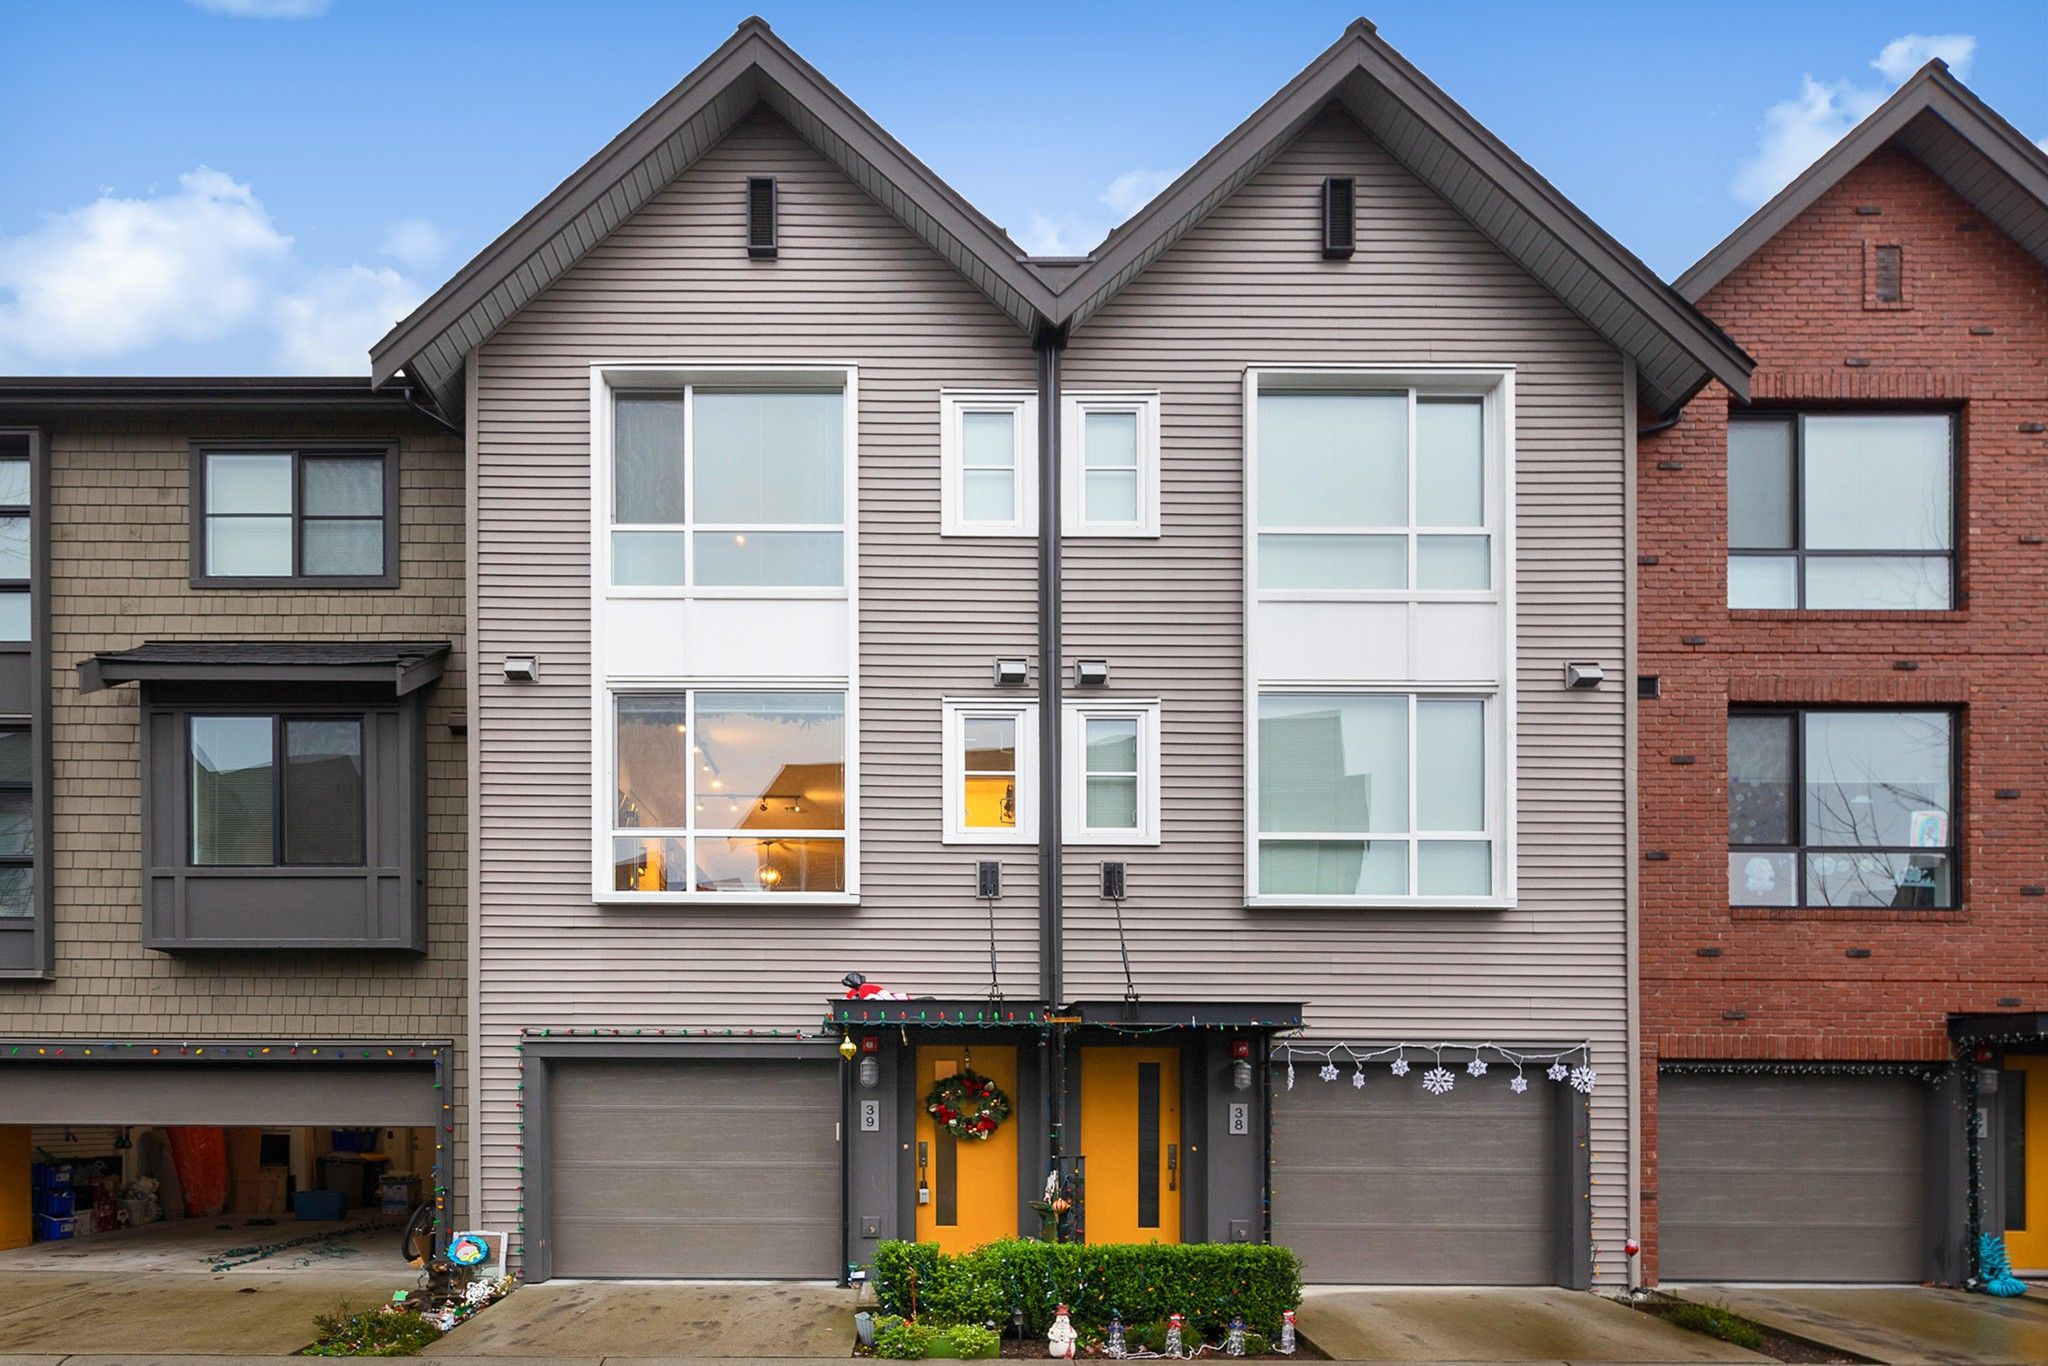 """Main Photo: 39 2380 RANGER Lane in Port Coquitlam: Riverwood Townhouse for sale in """"FREEMONT INDIGO"""" : MLS®# R2522566"""